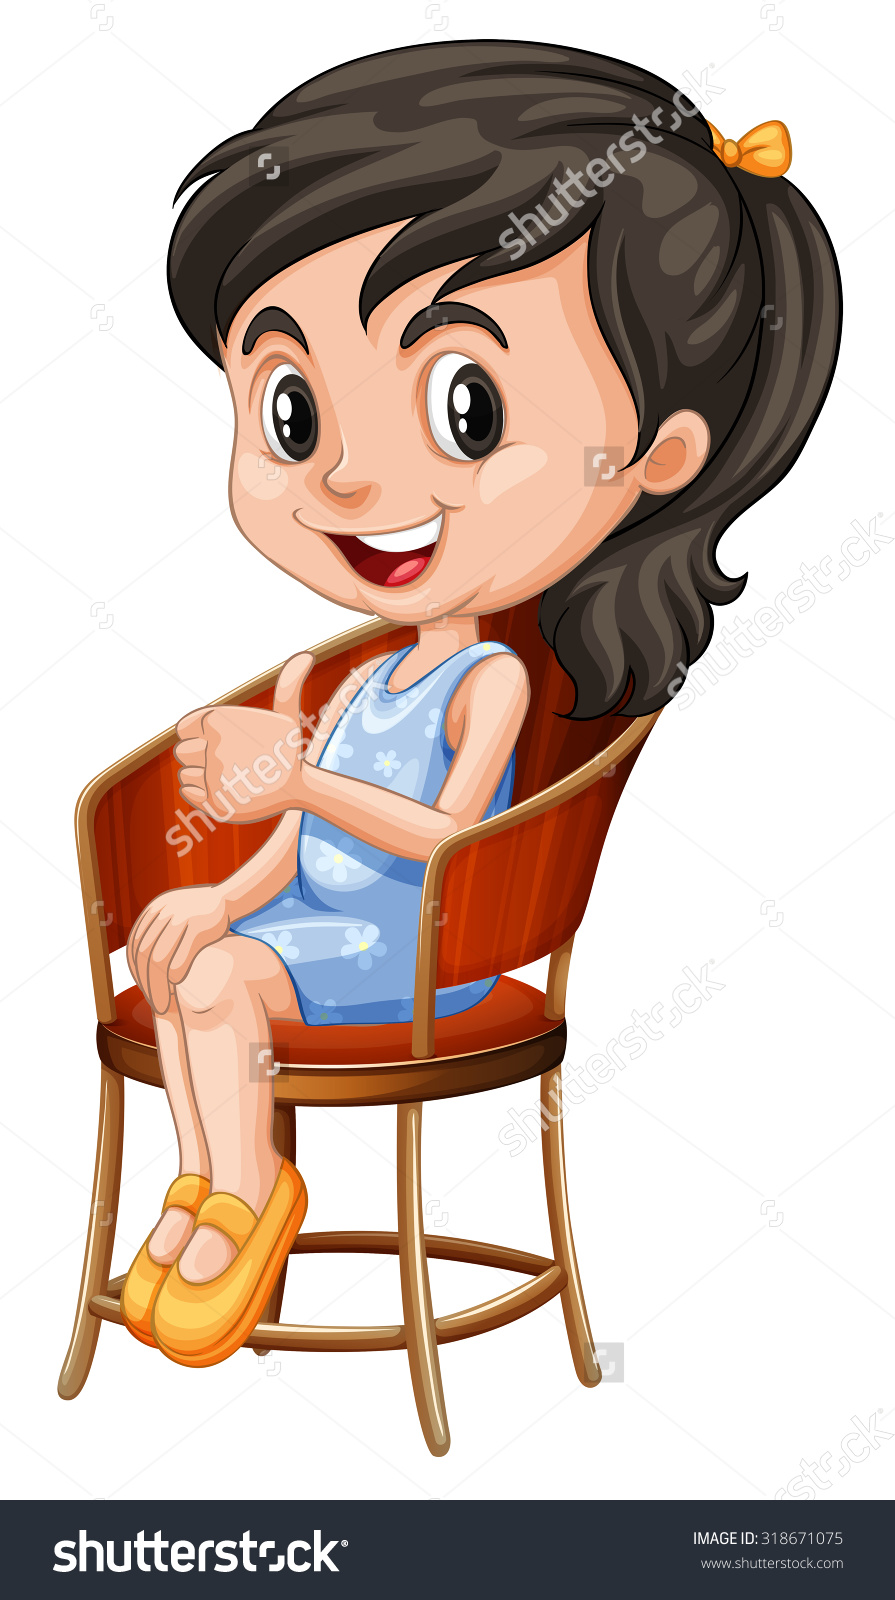 Girl Sitting In A Chair Clipart.